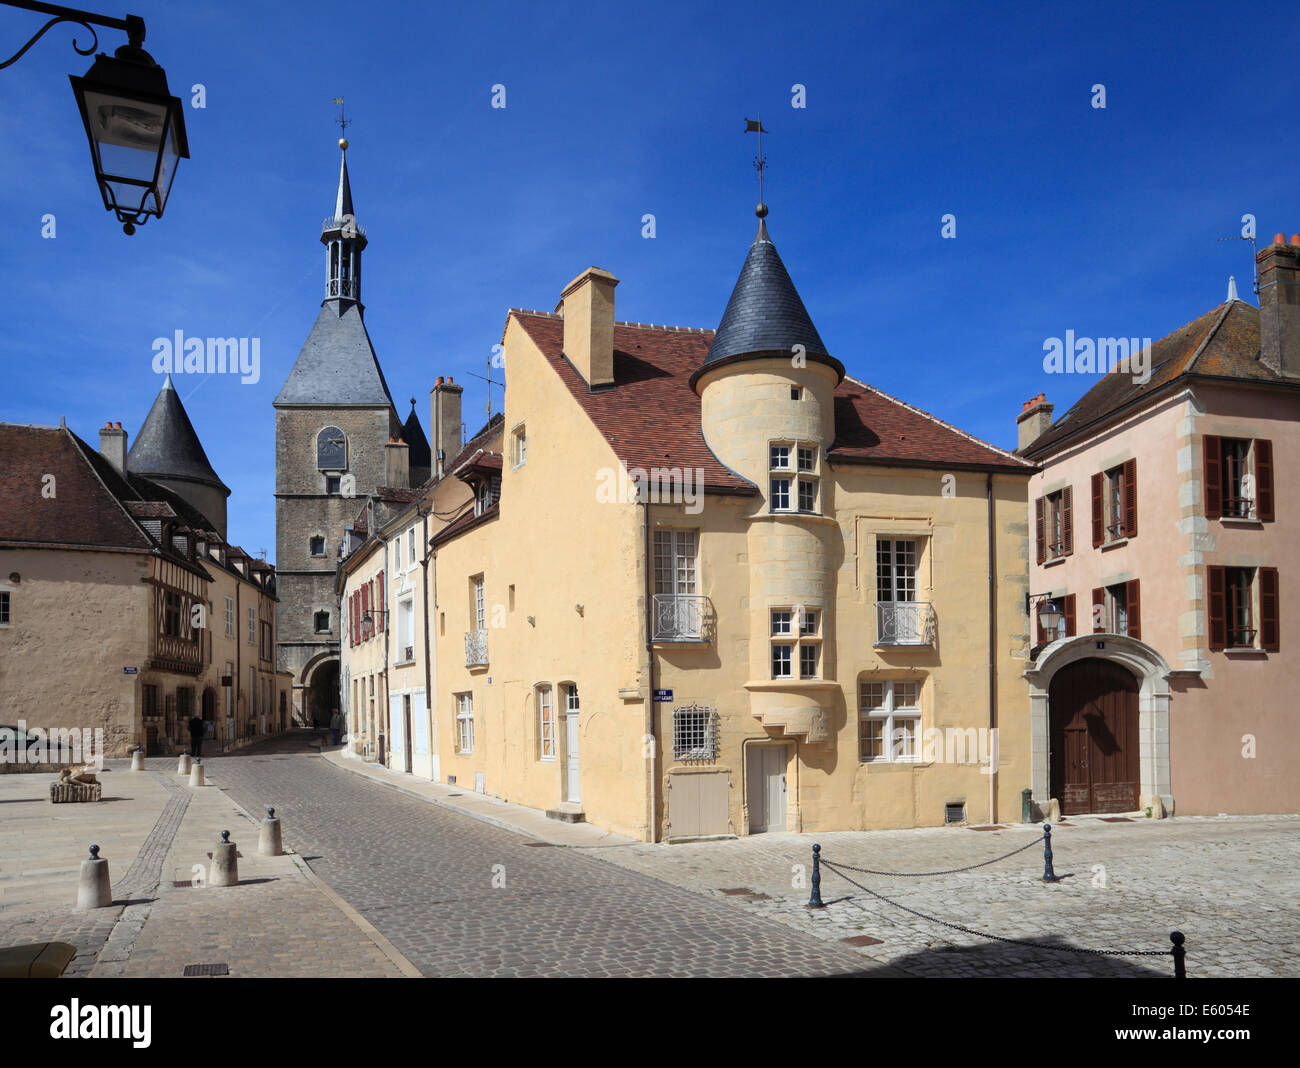 Maison Des Sires De Domecy and Clock Tower, Avallon, Bourgogne, France. - Stock Image